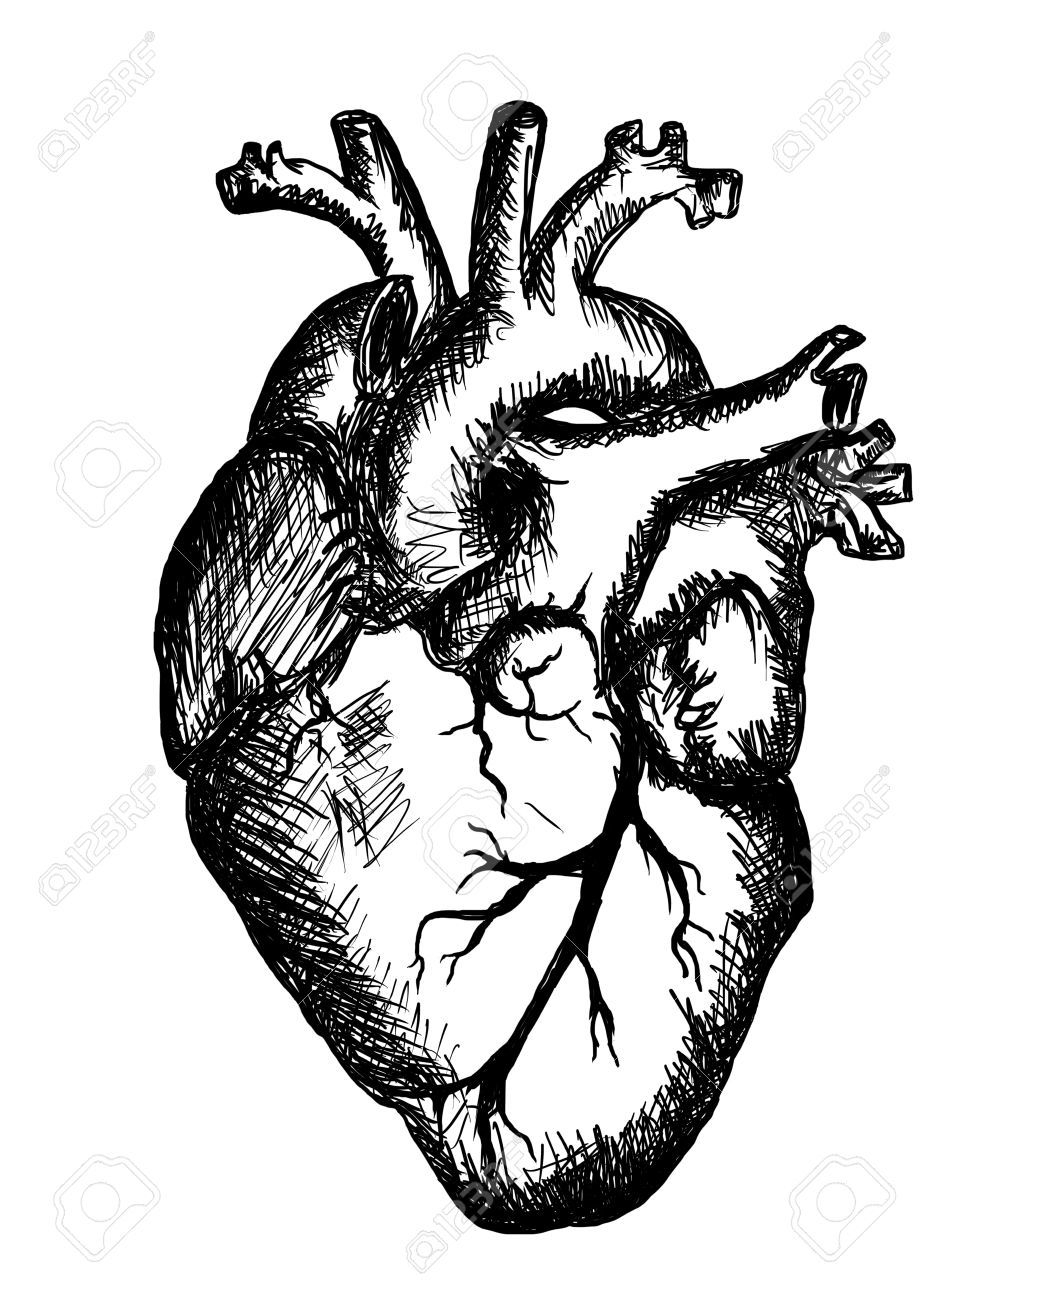 Labeled Drawing Of The Heart At Free For Personal Human Diagrams Schematic Diagram 1044x1300 Picture Label